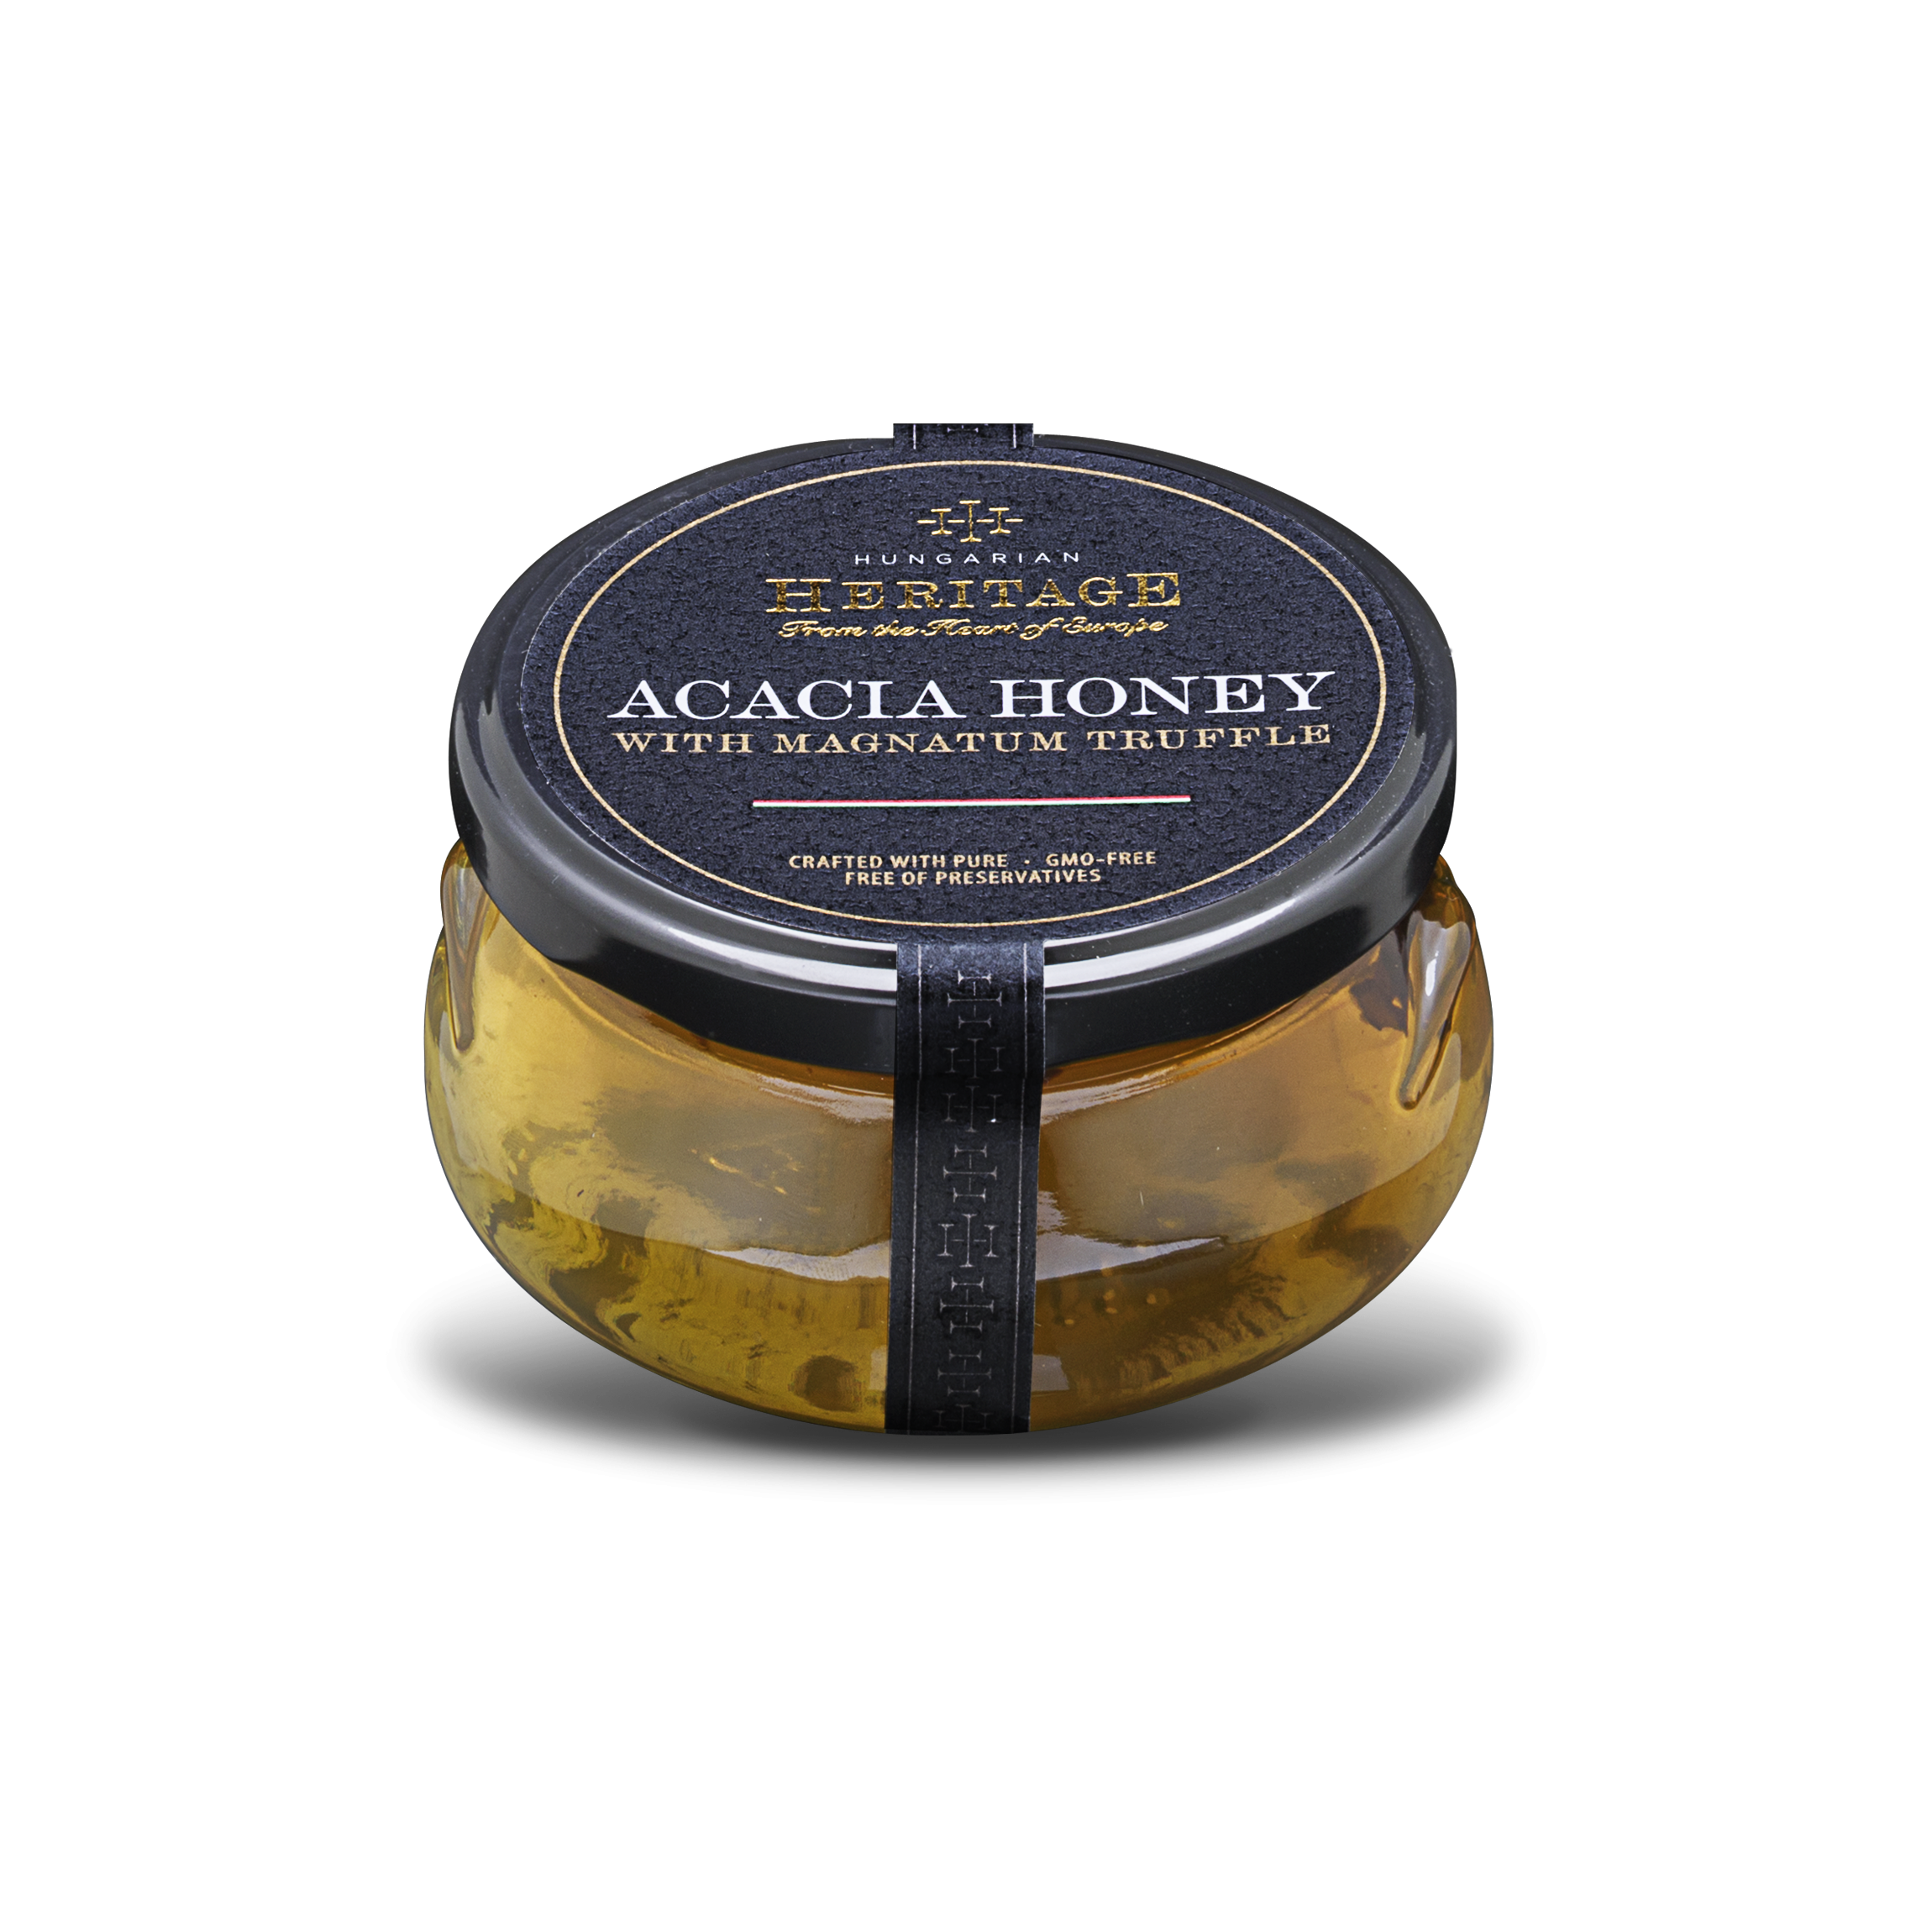 Acacia Honey with Magnatum